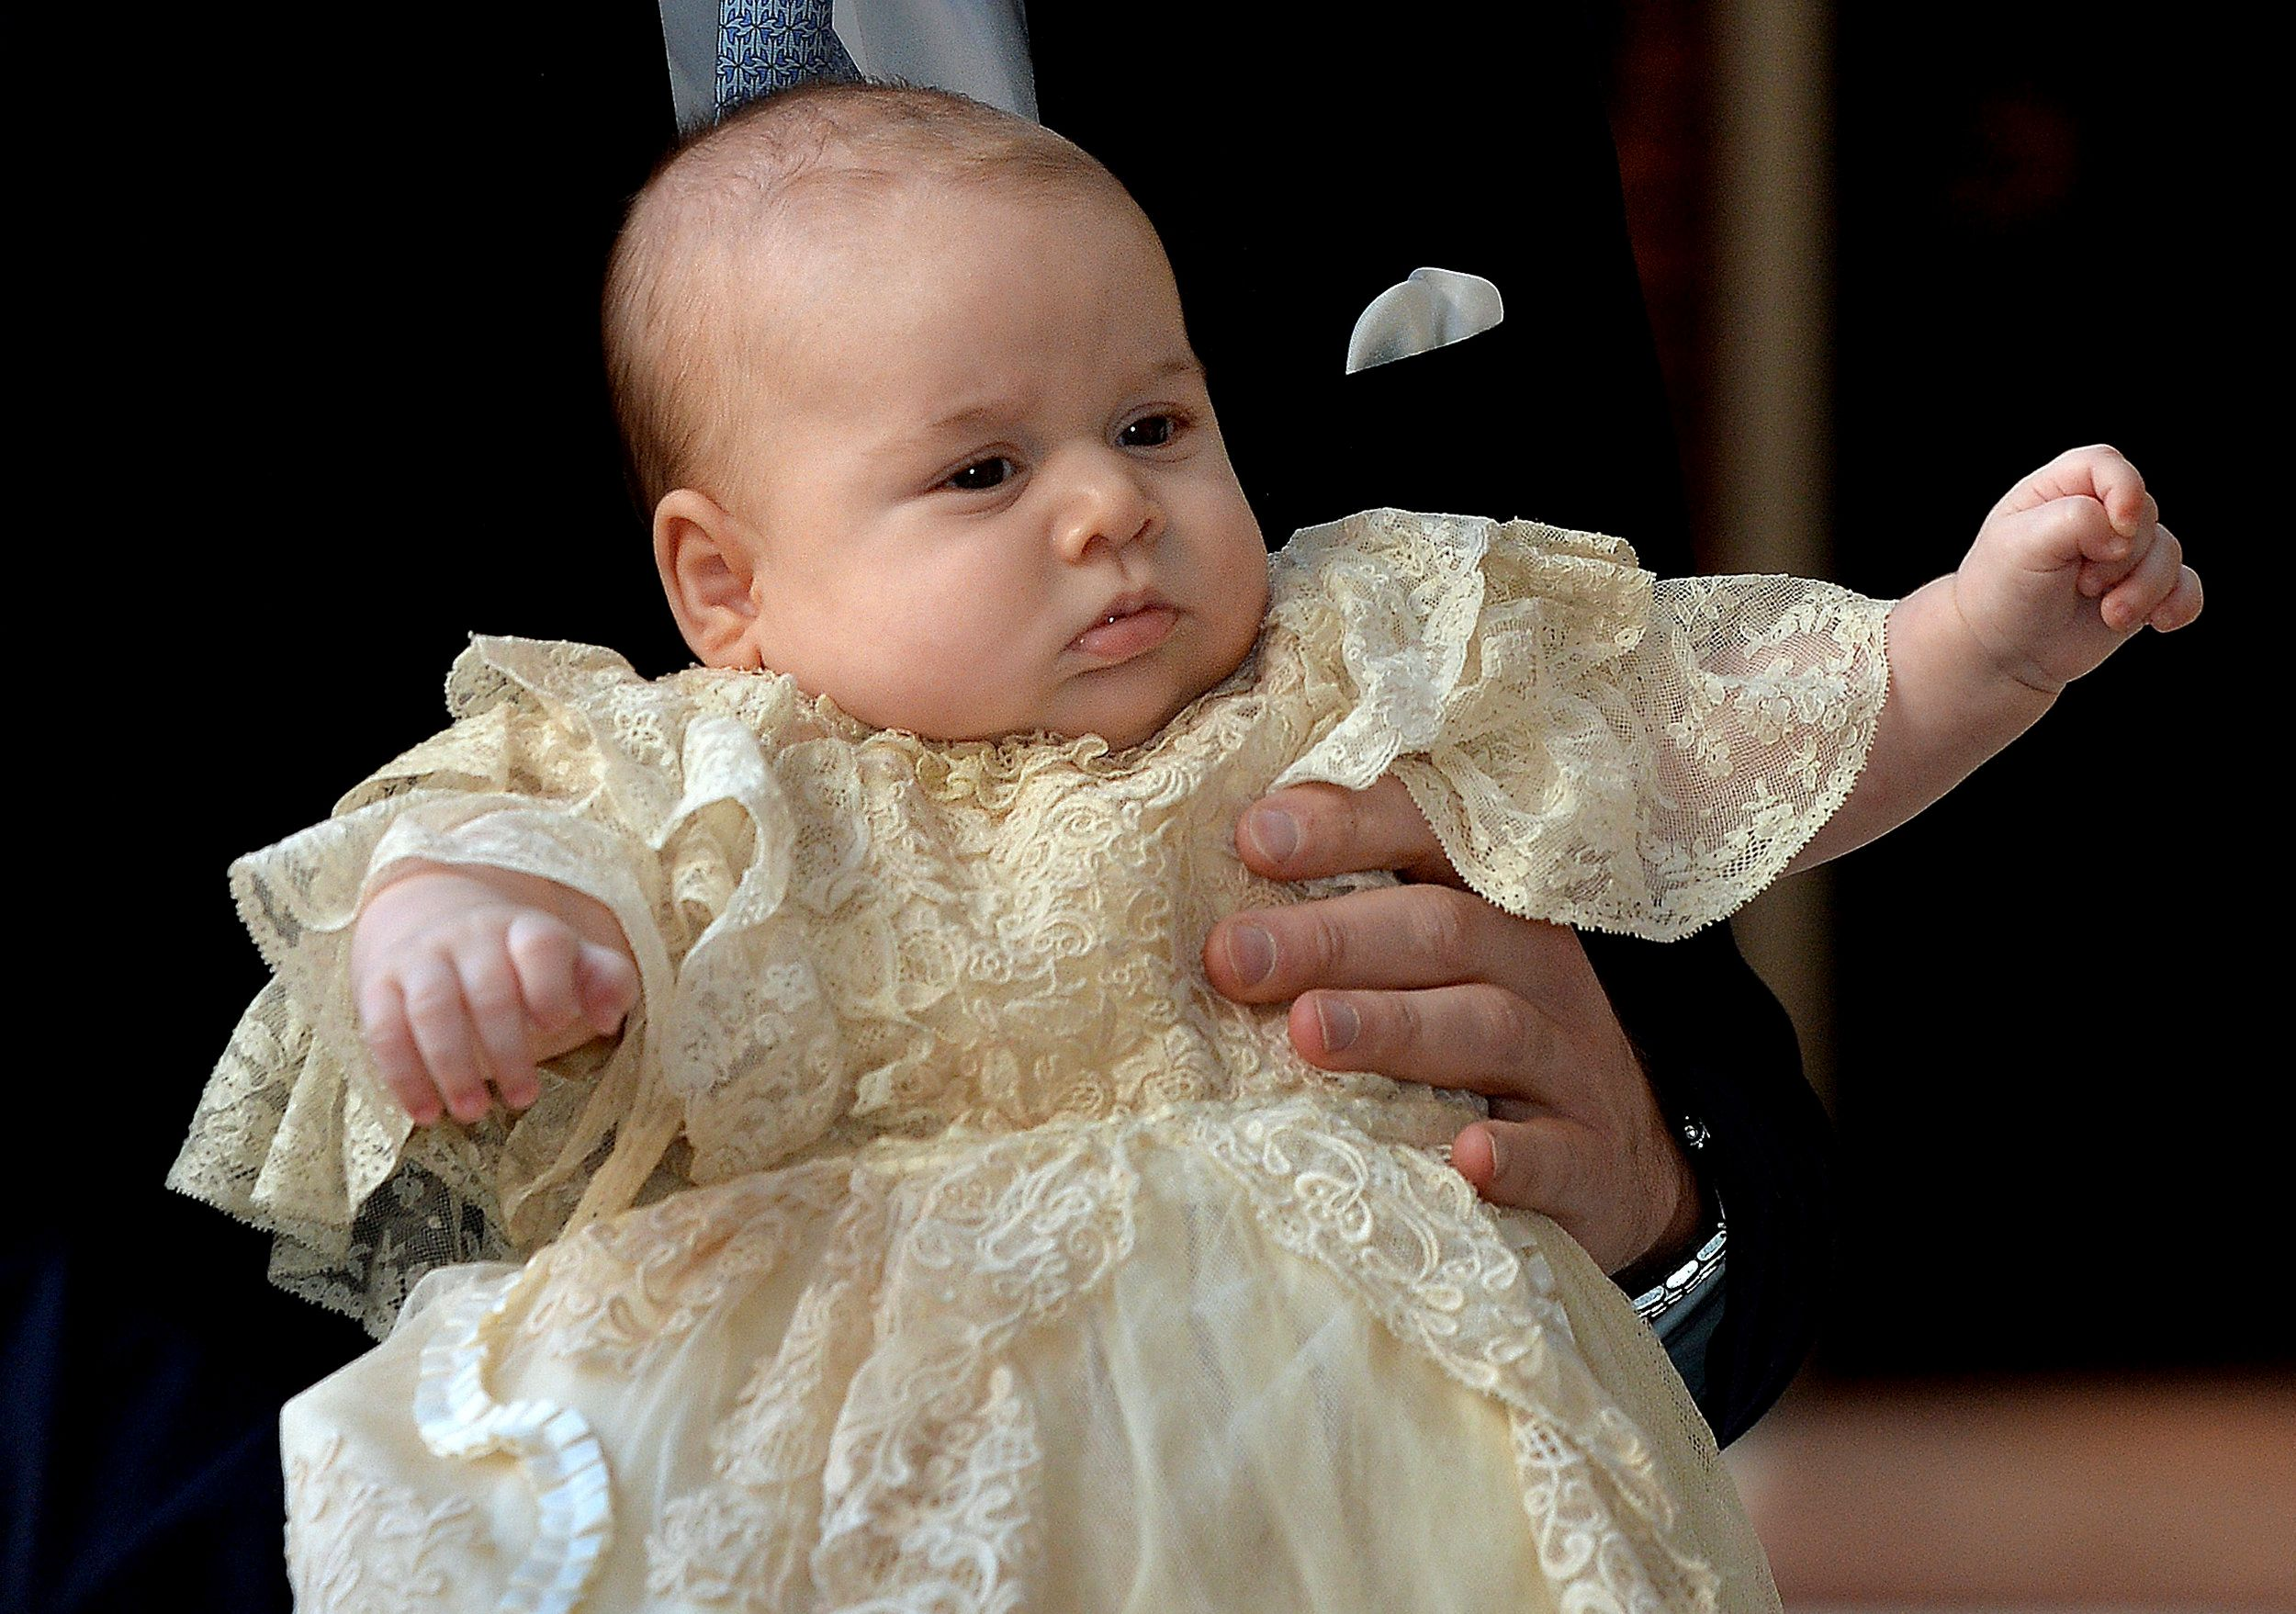 Prince William carries Prince George as they arrive for his christening at St James's Palace in London onOct. 23, 2013.